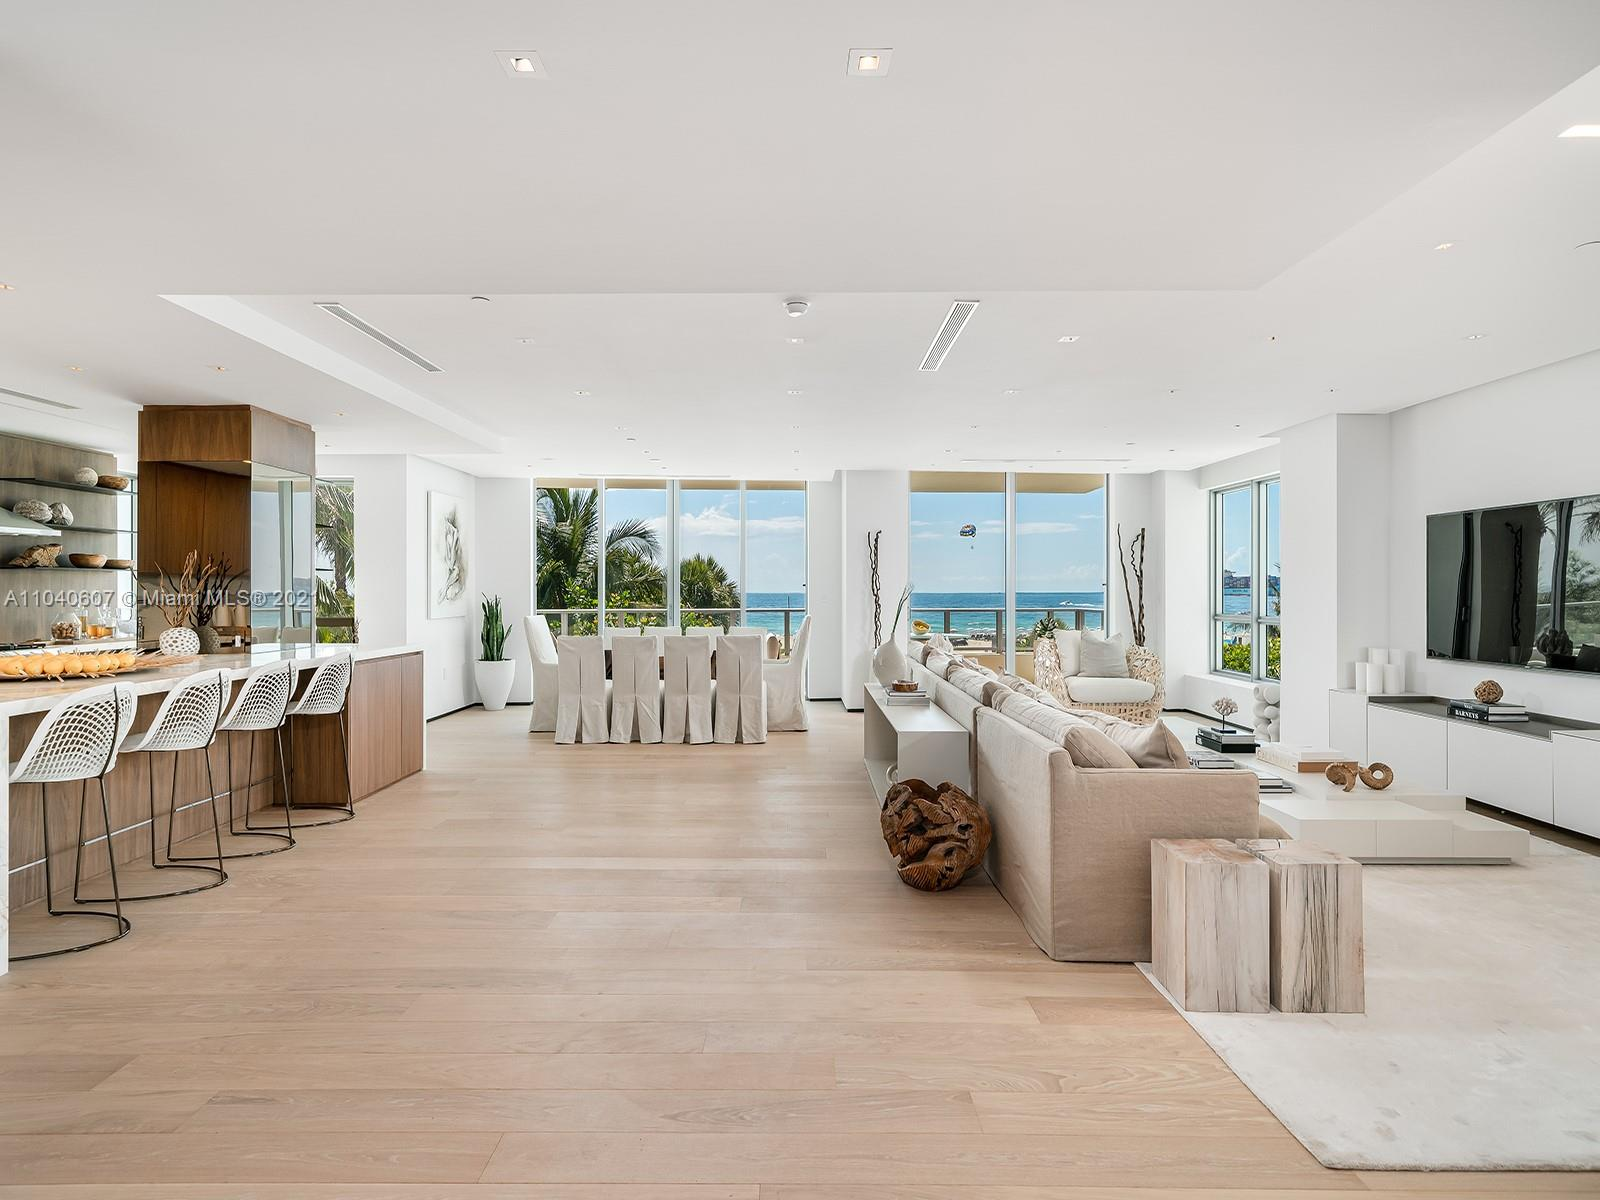 This exquisite residence at Ocean House, an ultra-high-end boutique address in Miami Beach's coveted South-of-Fifth enclave, offers privacy, luxury, and spectacular ocean views. Recently renovated, the sprawling 4,068 square foot, four-bed, and four-and-a-half-bath home includes a luxurious master suite with a dressing room and spa-like bathroom. No detail has been overlooked, including the private elevator entry, large balconies, massive great room, Crestron smart home system, and the option to be delivered turnkey and fully furnished by Artefacto. Enjoy an extensive roster of amenities, including stunning common areas designed by Antrobus + Ramirez, screening and billiards rooms, a state-of-the-art fitness center, poolside cabanas, a serviced beach, and a private hair salon.